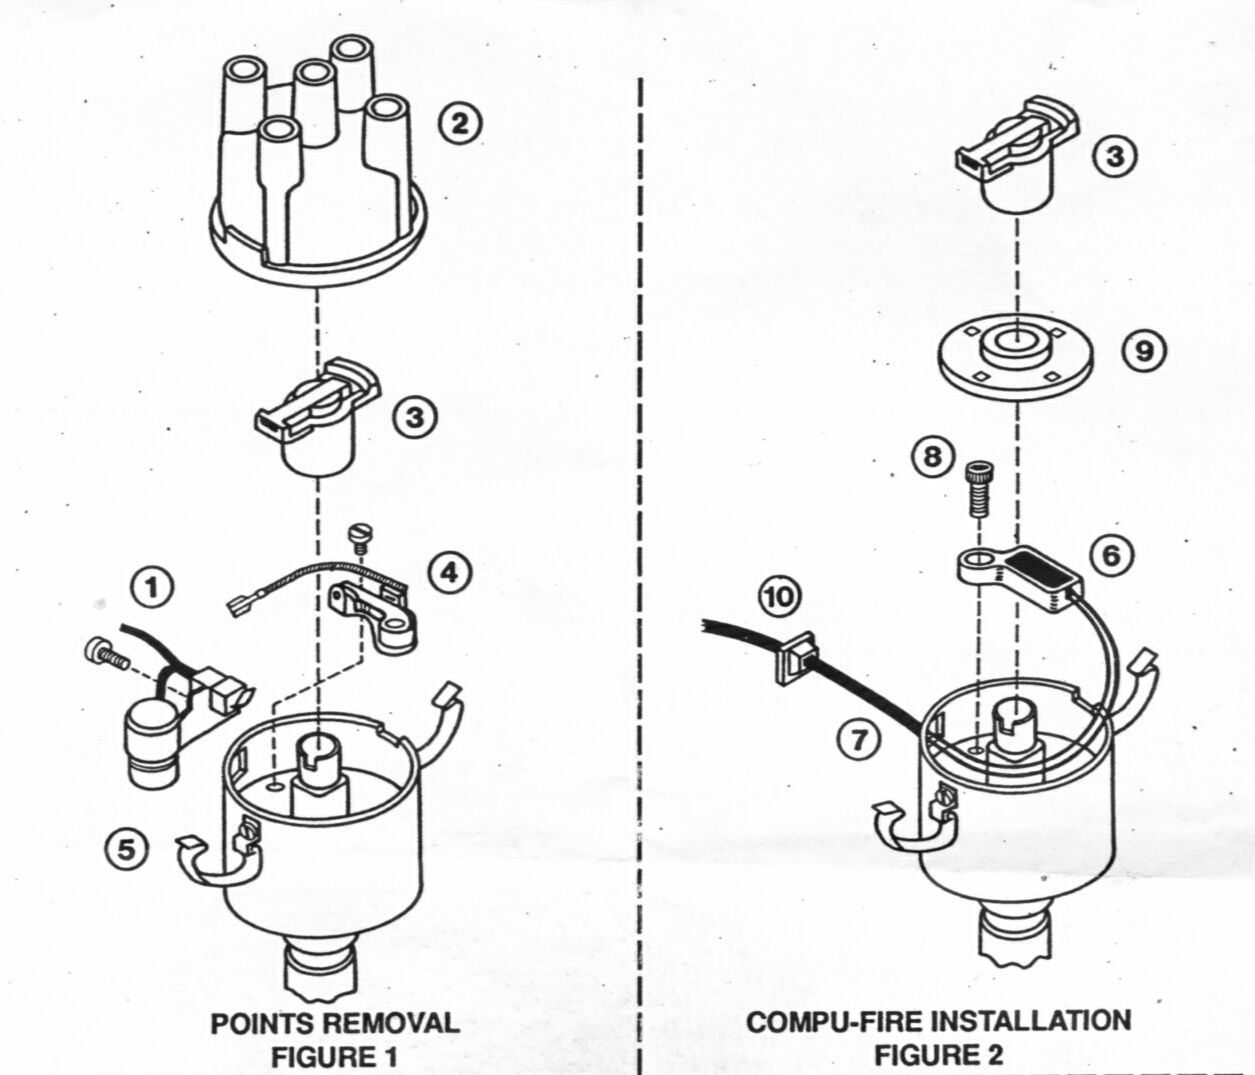 Vw Distributor Diagram Wiring Diagrams Plymouth Vacuum Electronic Ignition Get Free Image Identification Beetle